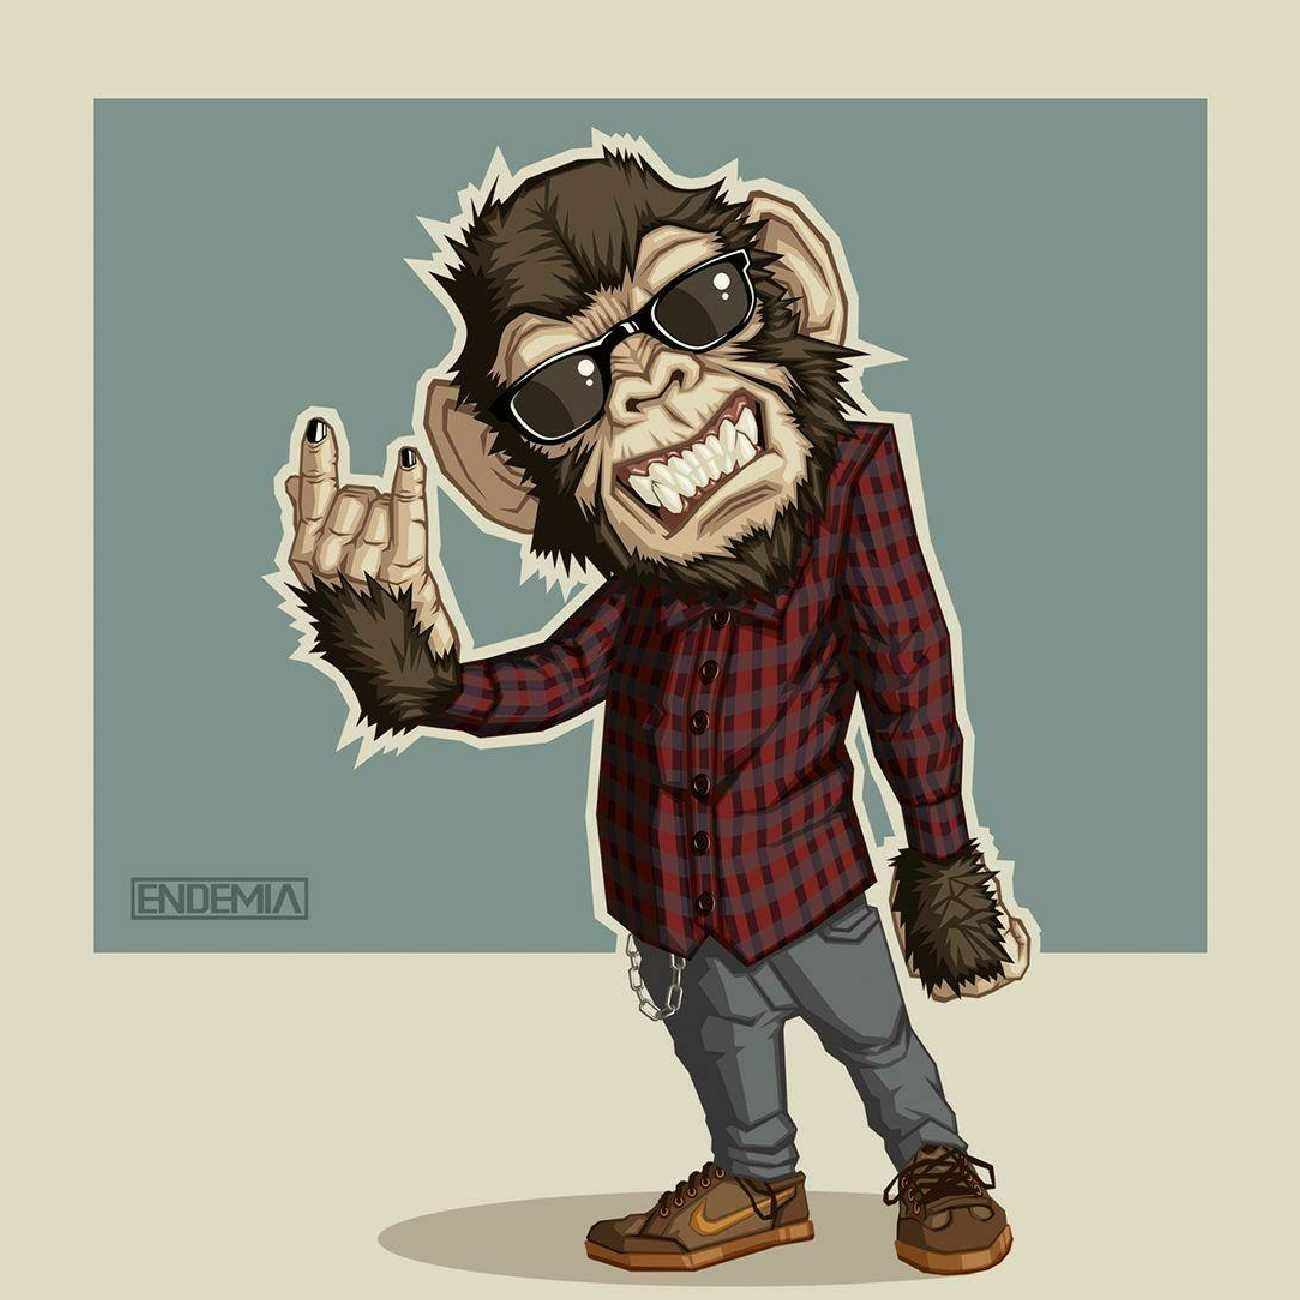 Pin by Paolo Cruz on Logos (With images) Monkey art